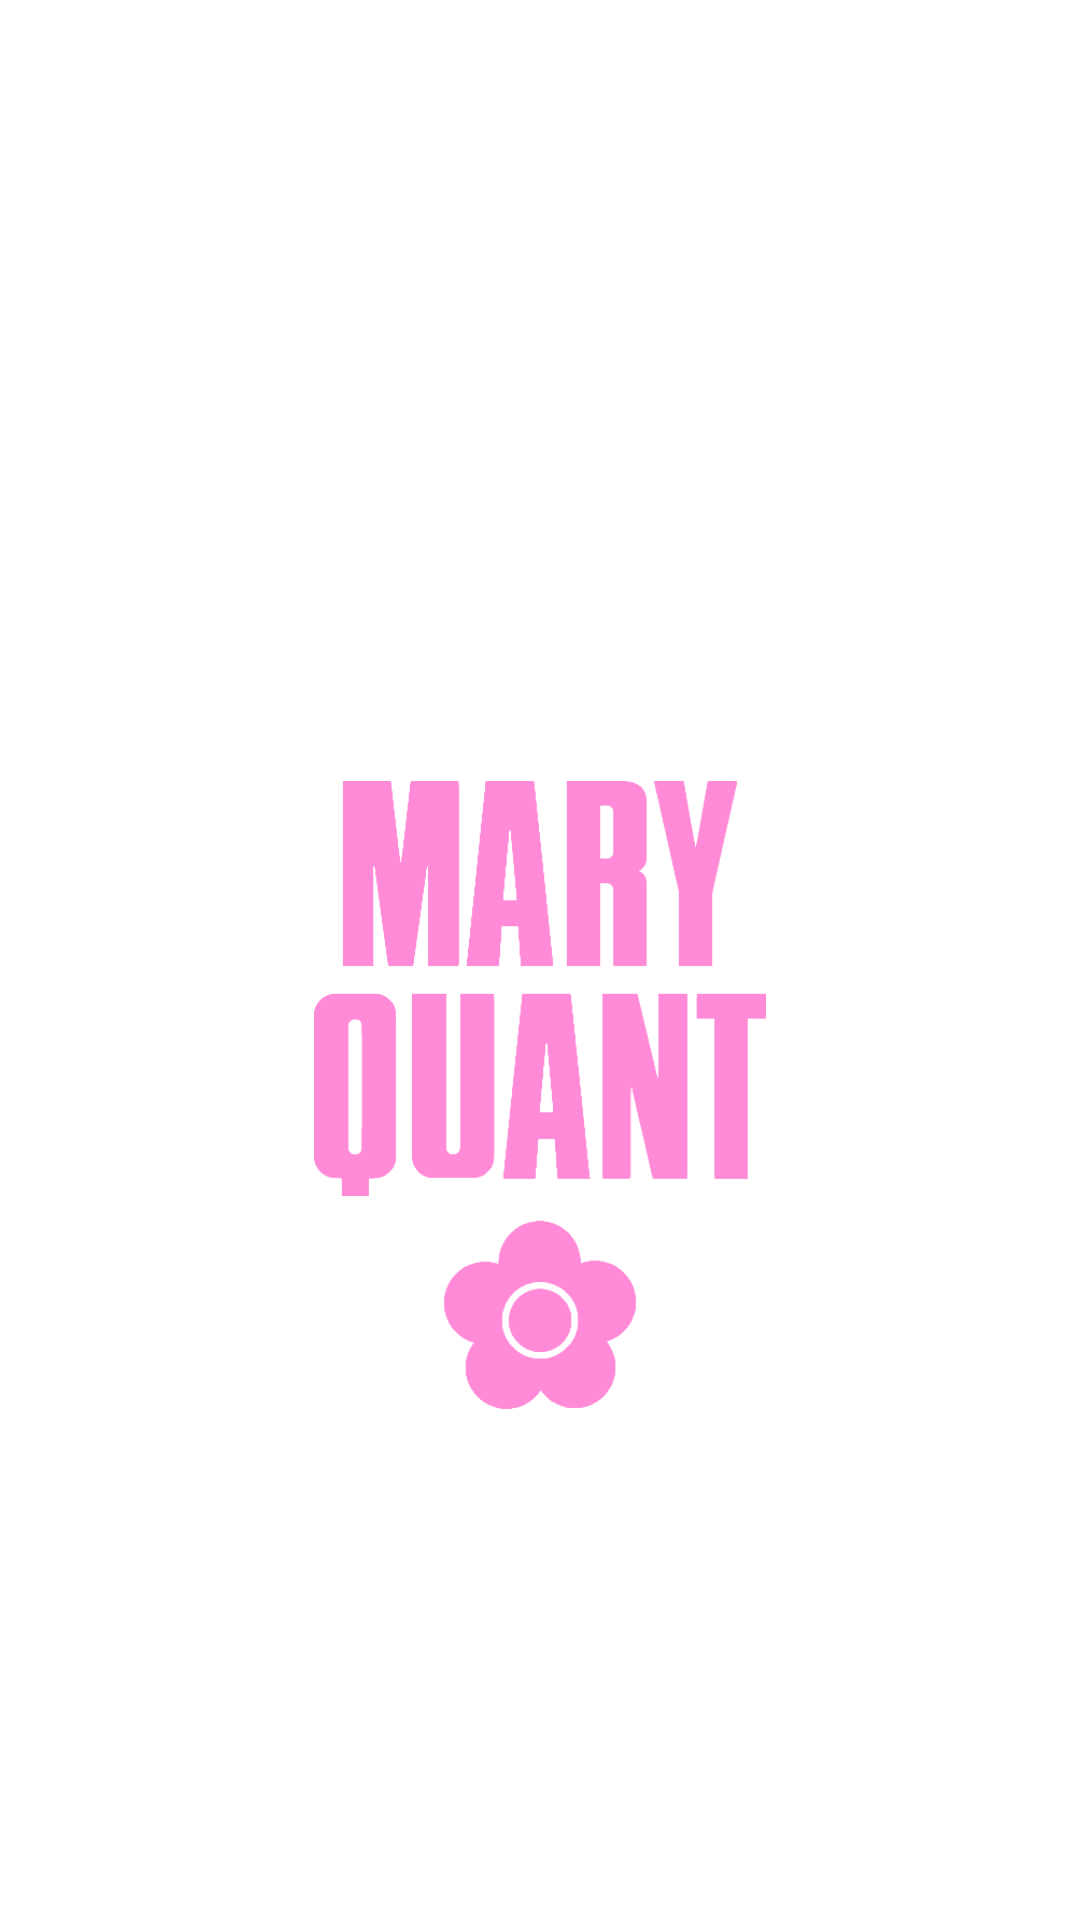 maryquant i11 - 20 MARY QUANT HQ Smartphone Wallpaper Collection